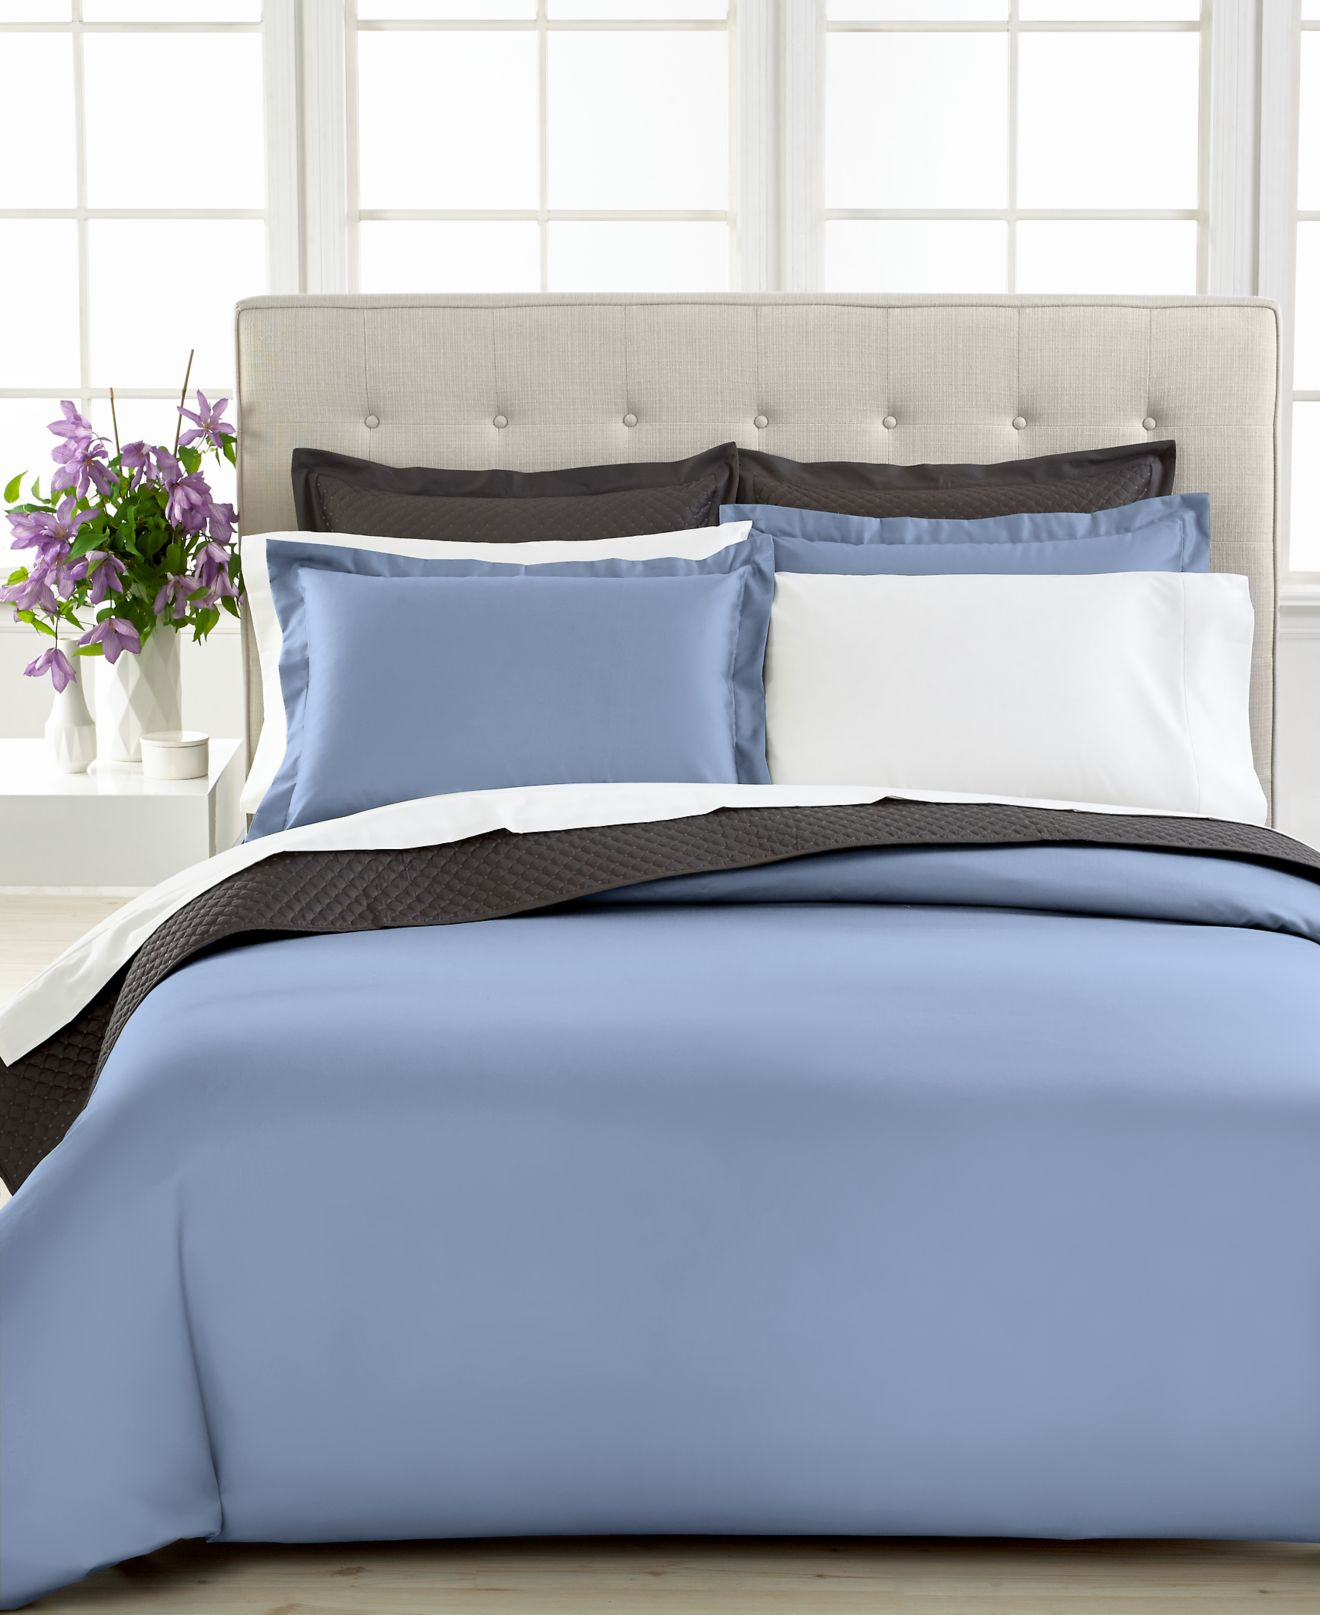 Solid Colored Duvet Covers Sweetgalas